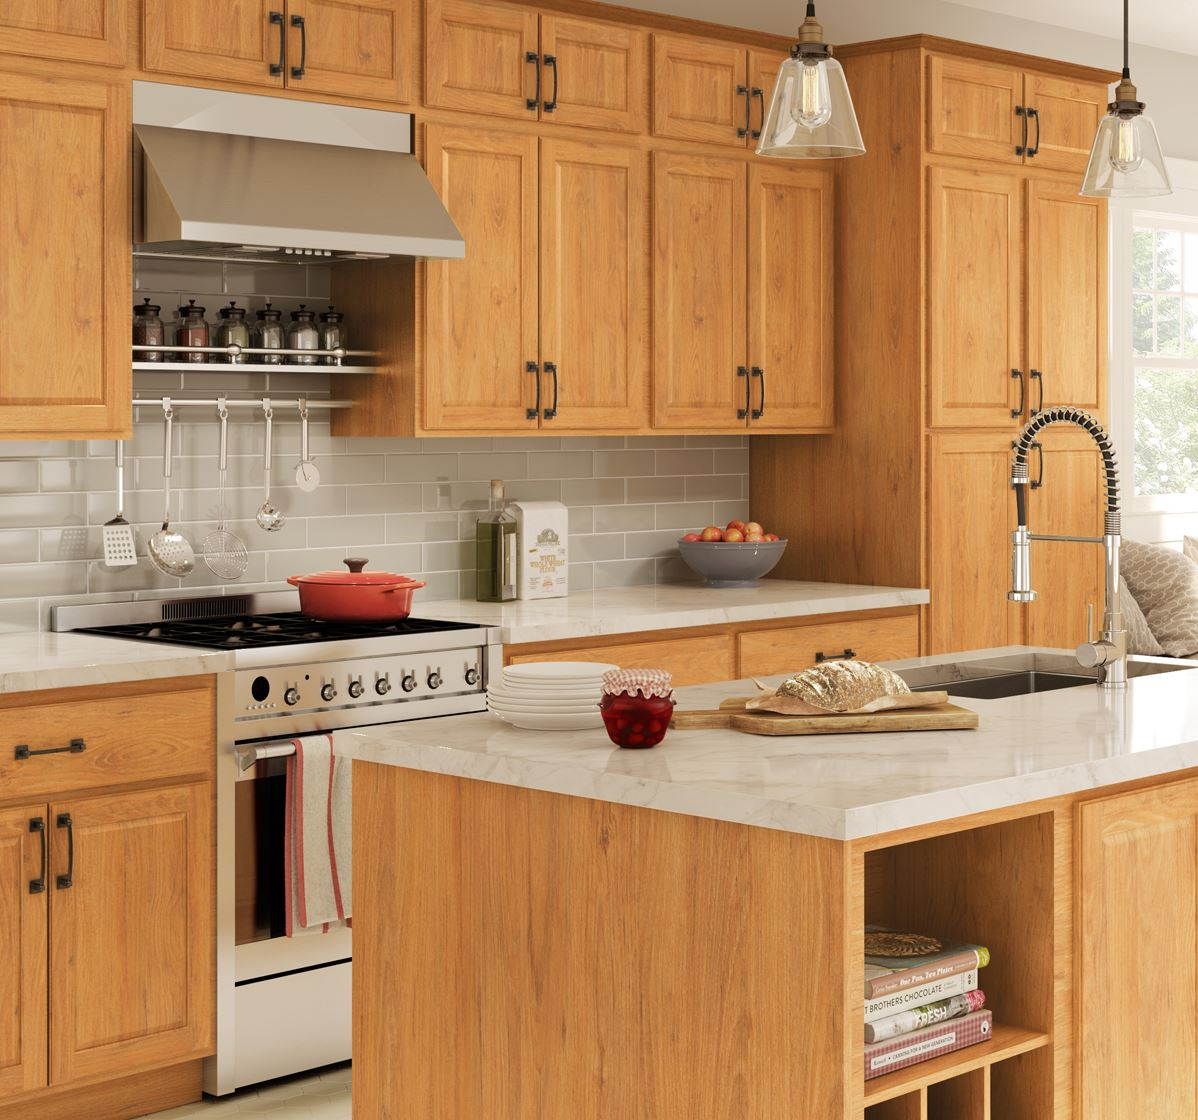 Madison Base Cabinets In Medium Oak